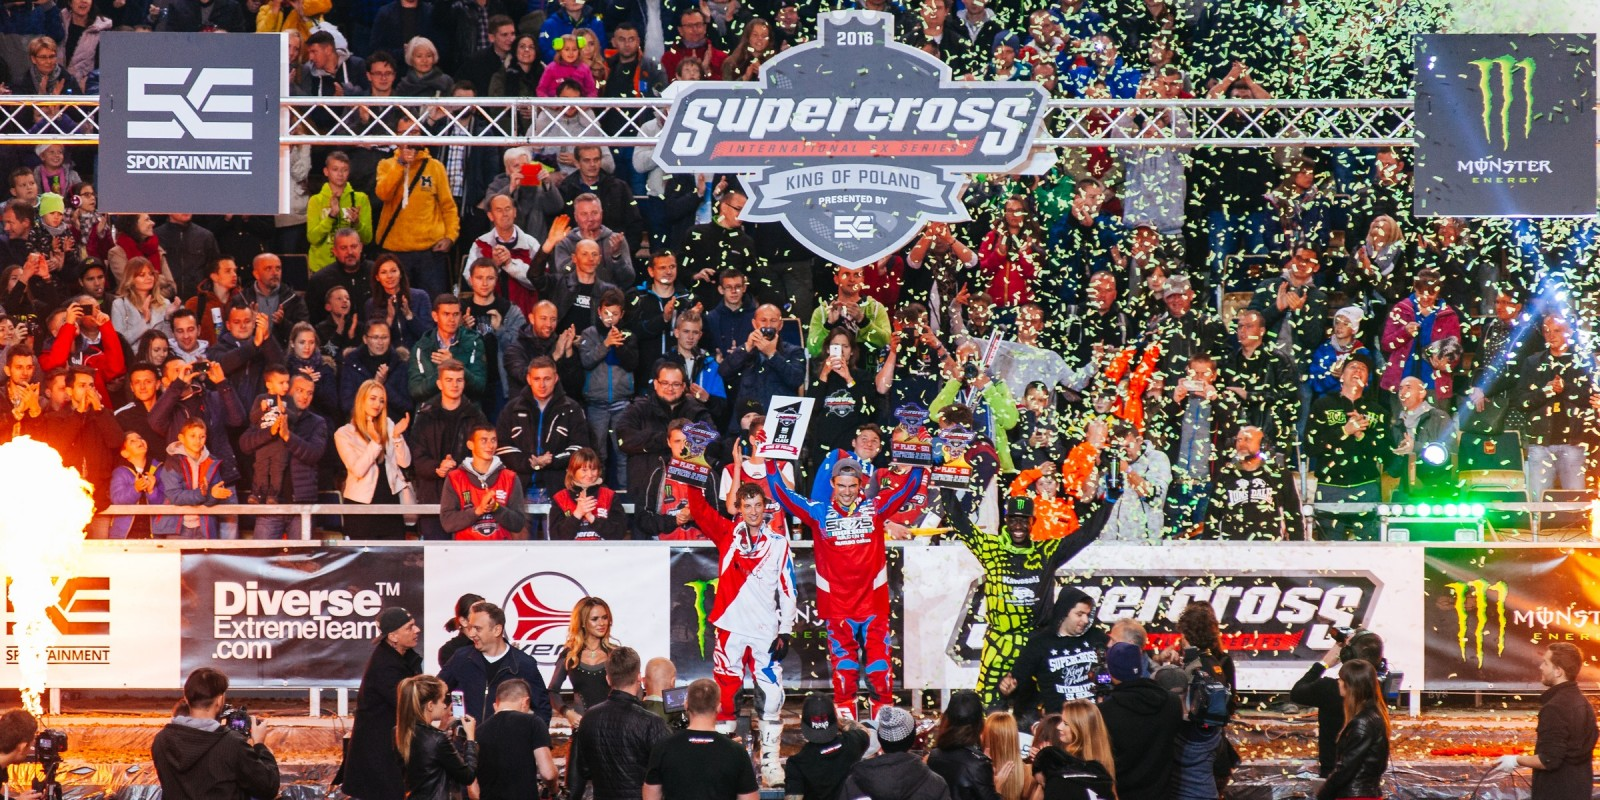 Supercross King of Poland 2016 - SX1 category podium